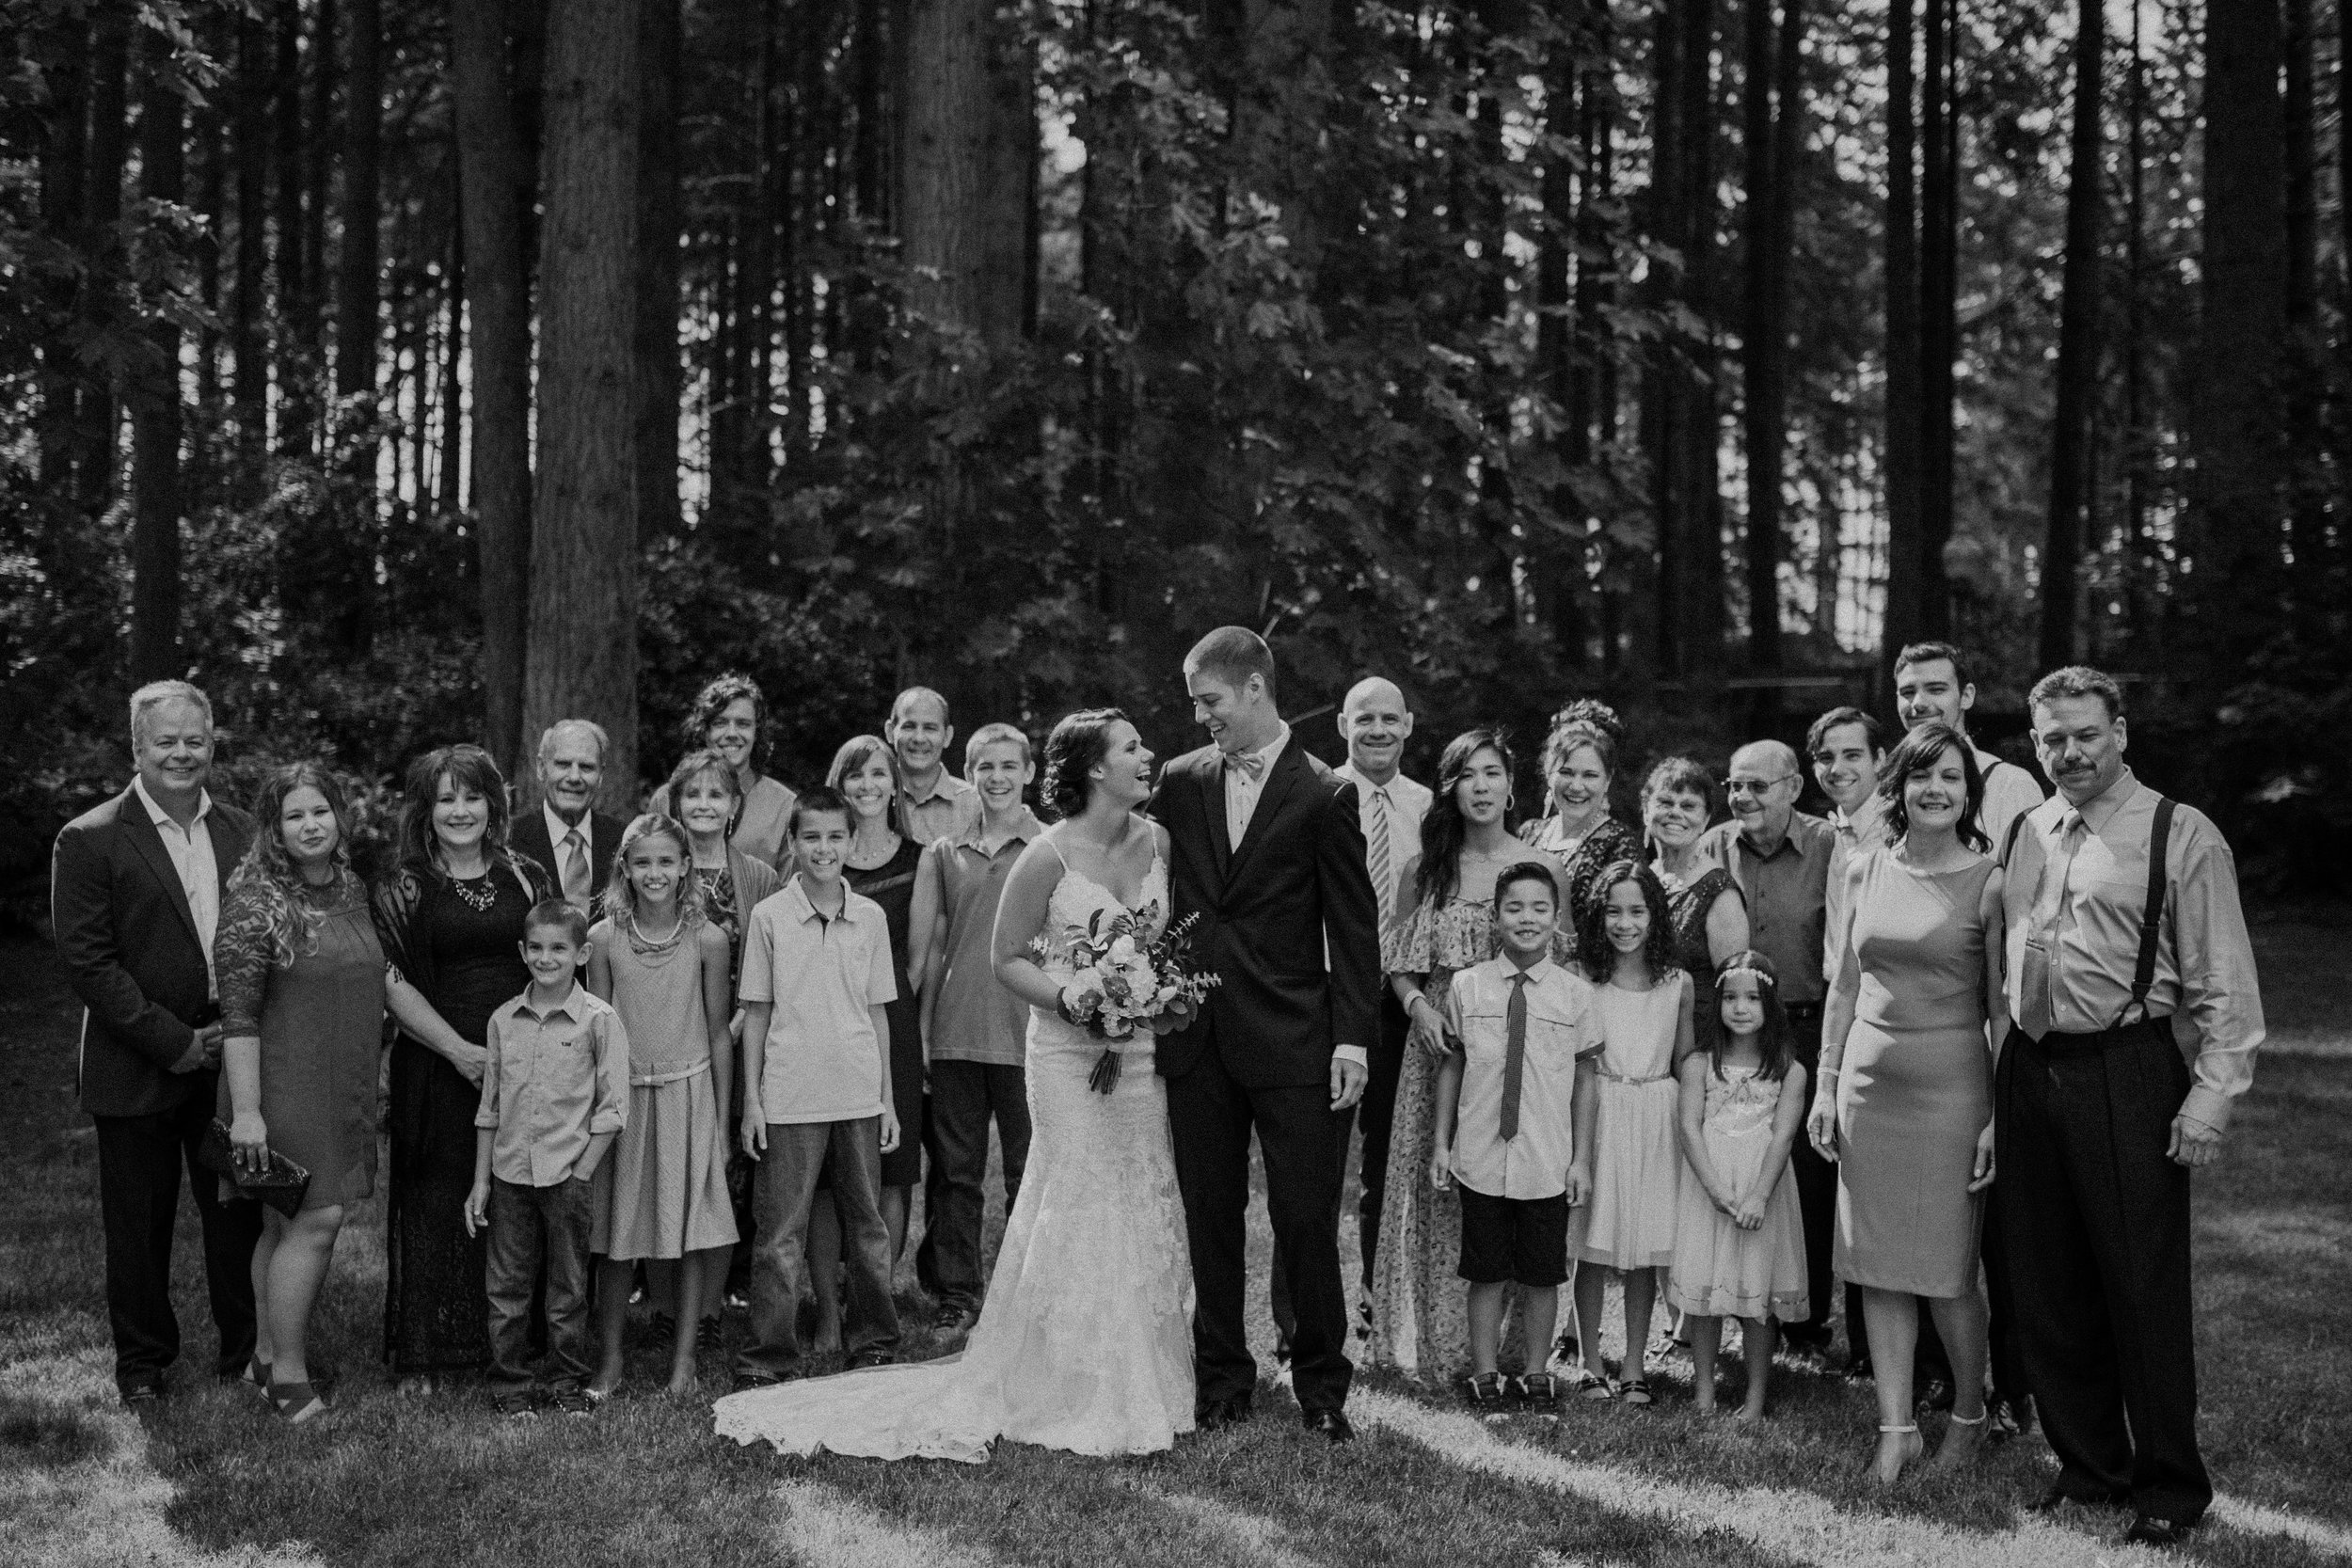 Shaynah Vandegriffe Photography | Eugene, Oregon wedding photographer | Deep Woods Events Wedding | Oregon Bride | Father of the Bride | Family Formals | Deep Woods Events